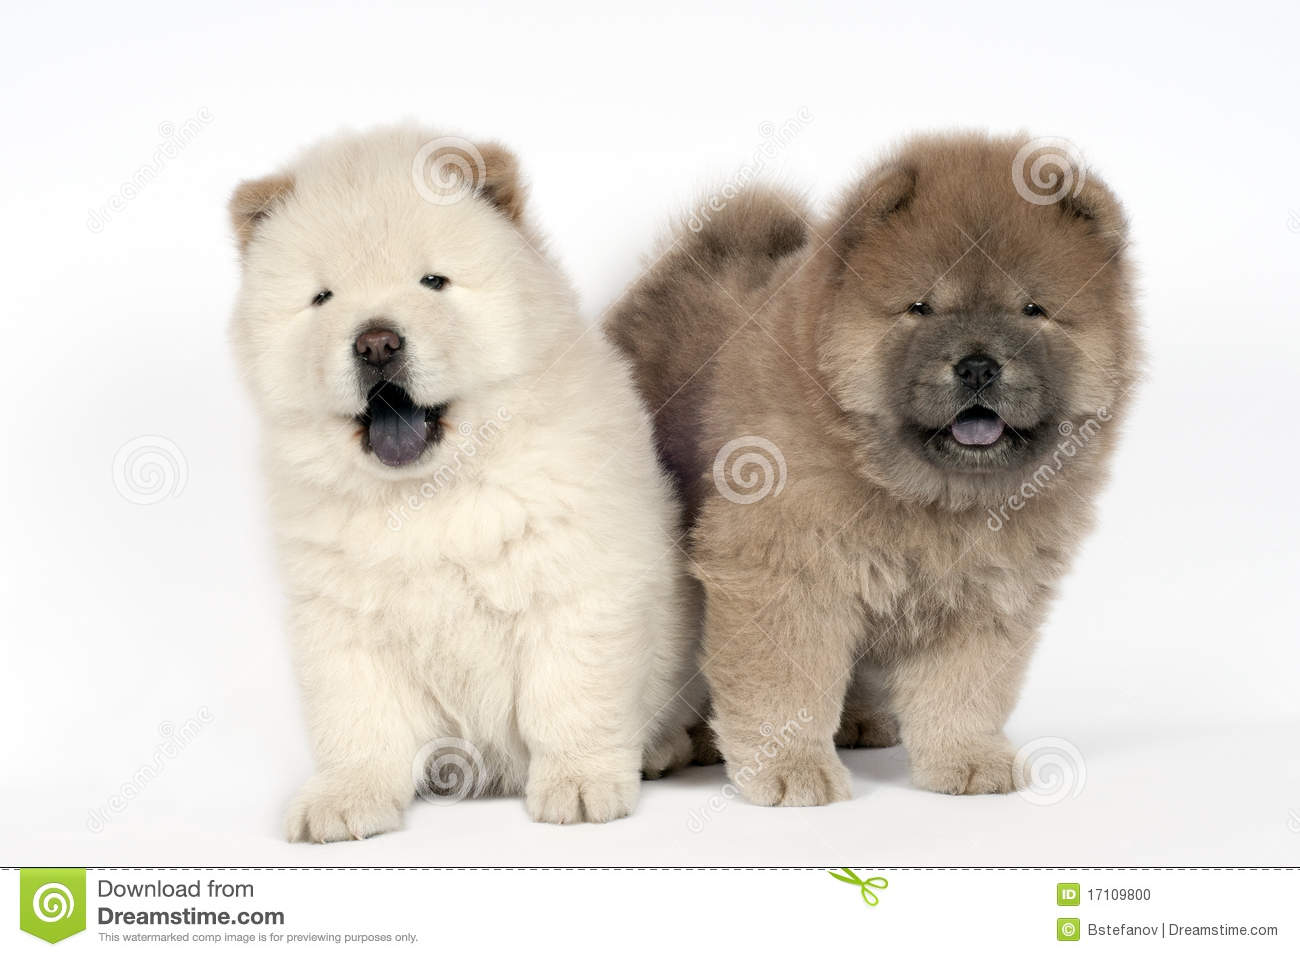 Two Chow chow puppies.